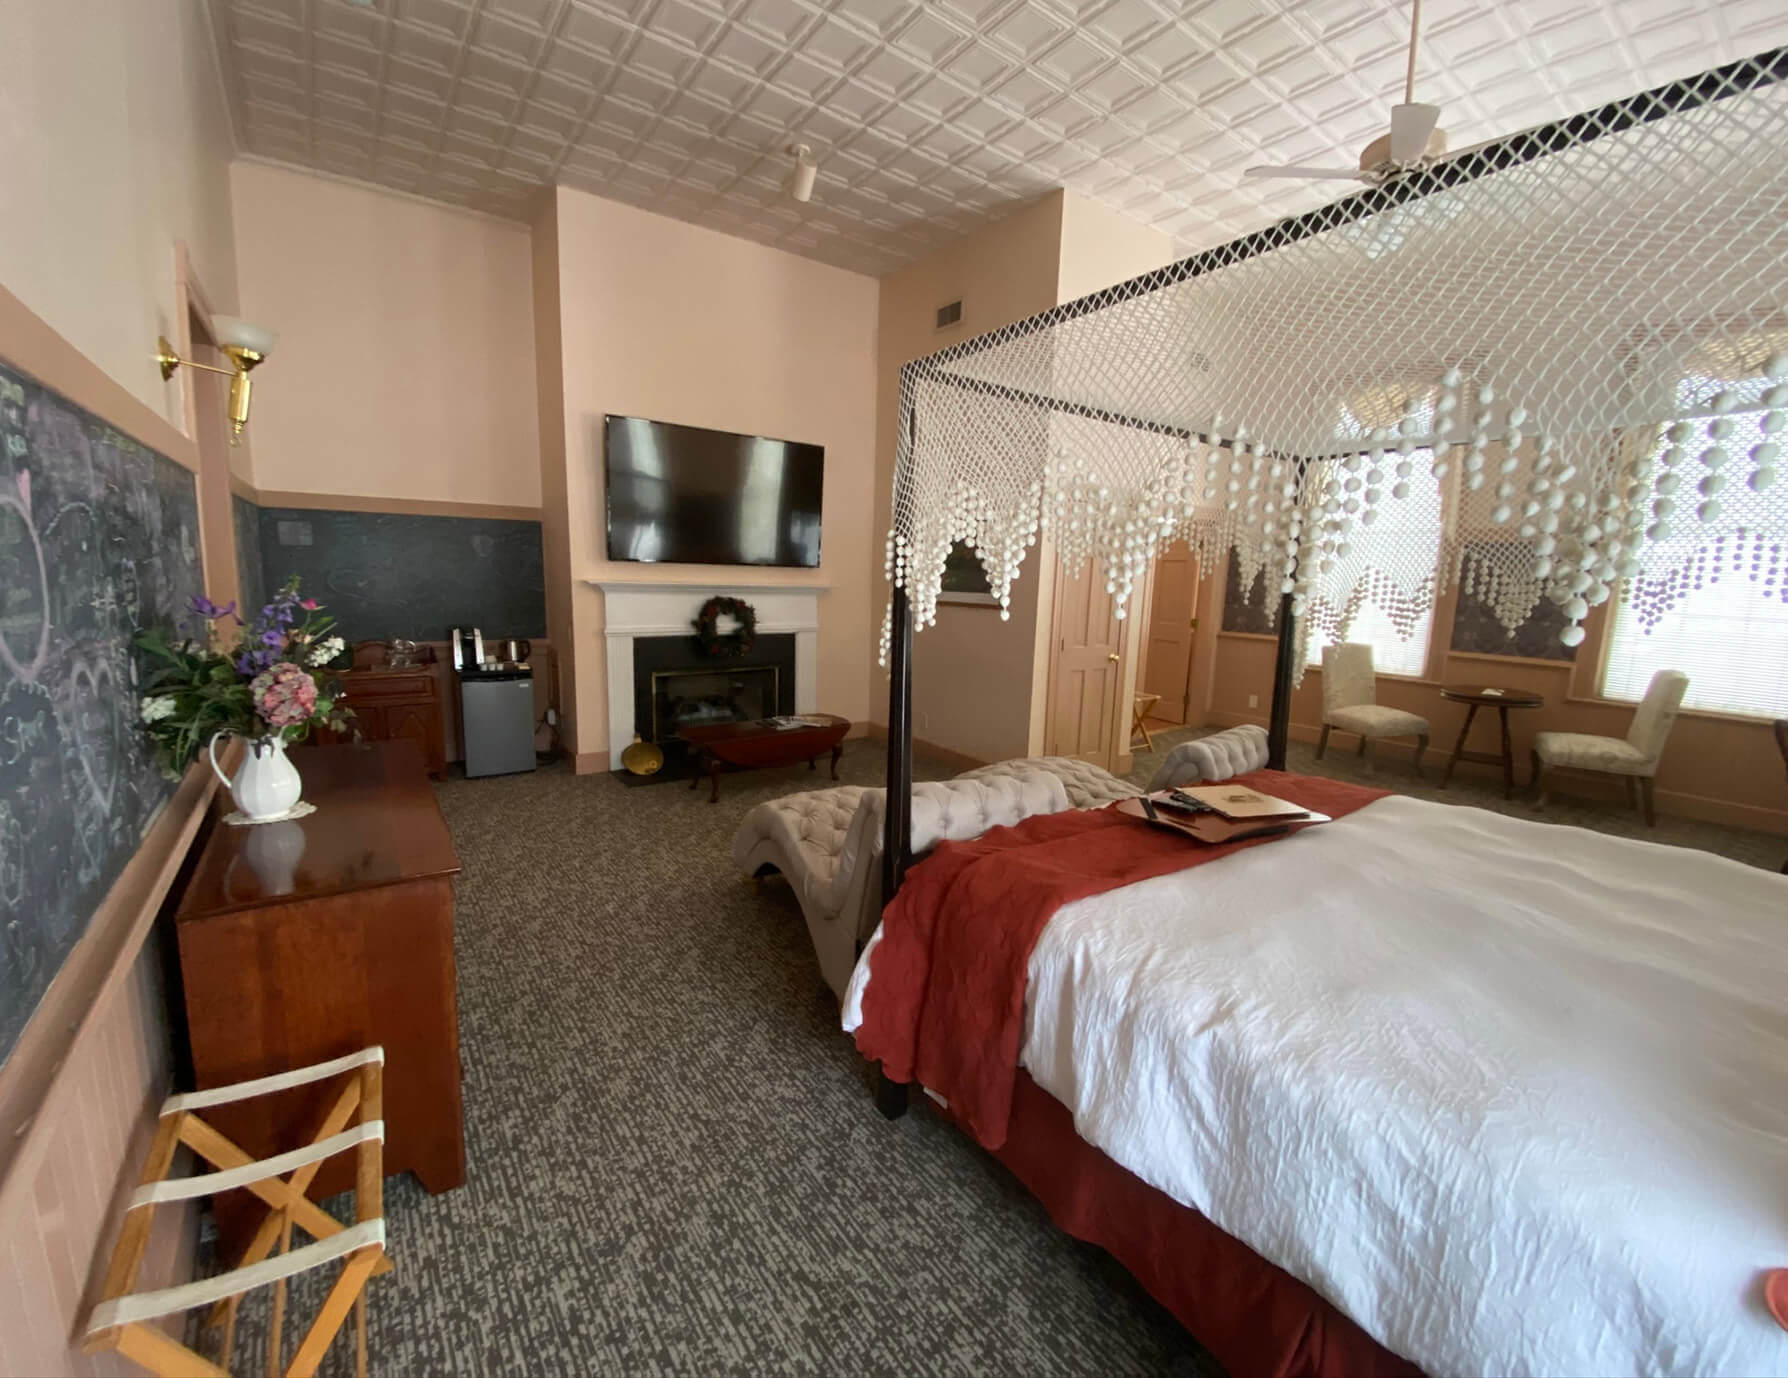 Le Lycee room - place to stay near Tanglewood